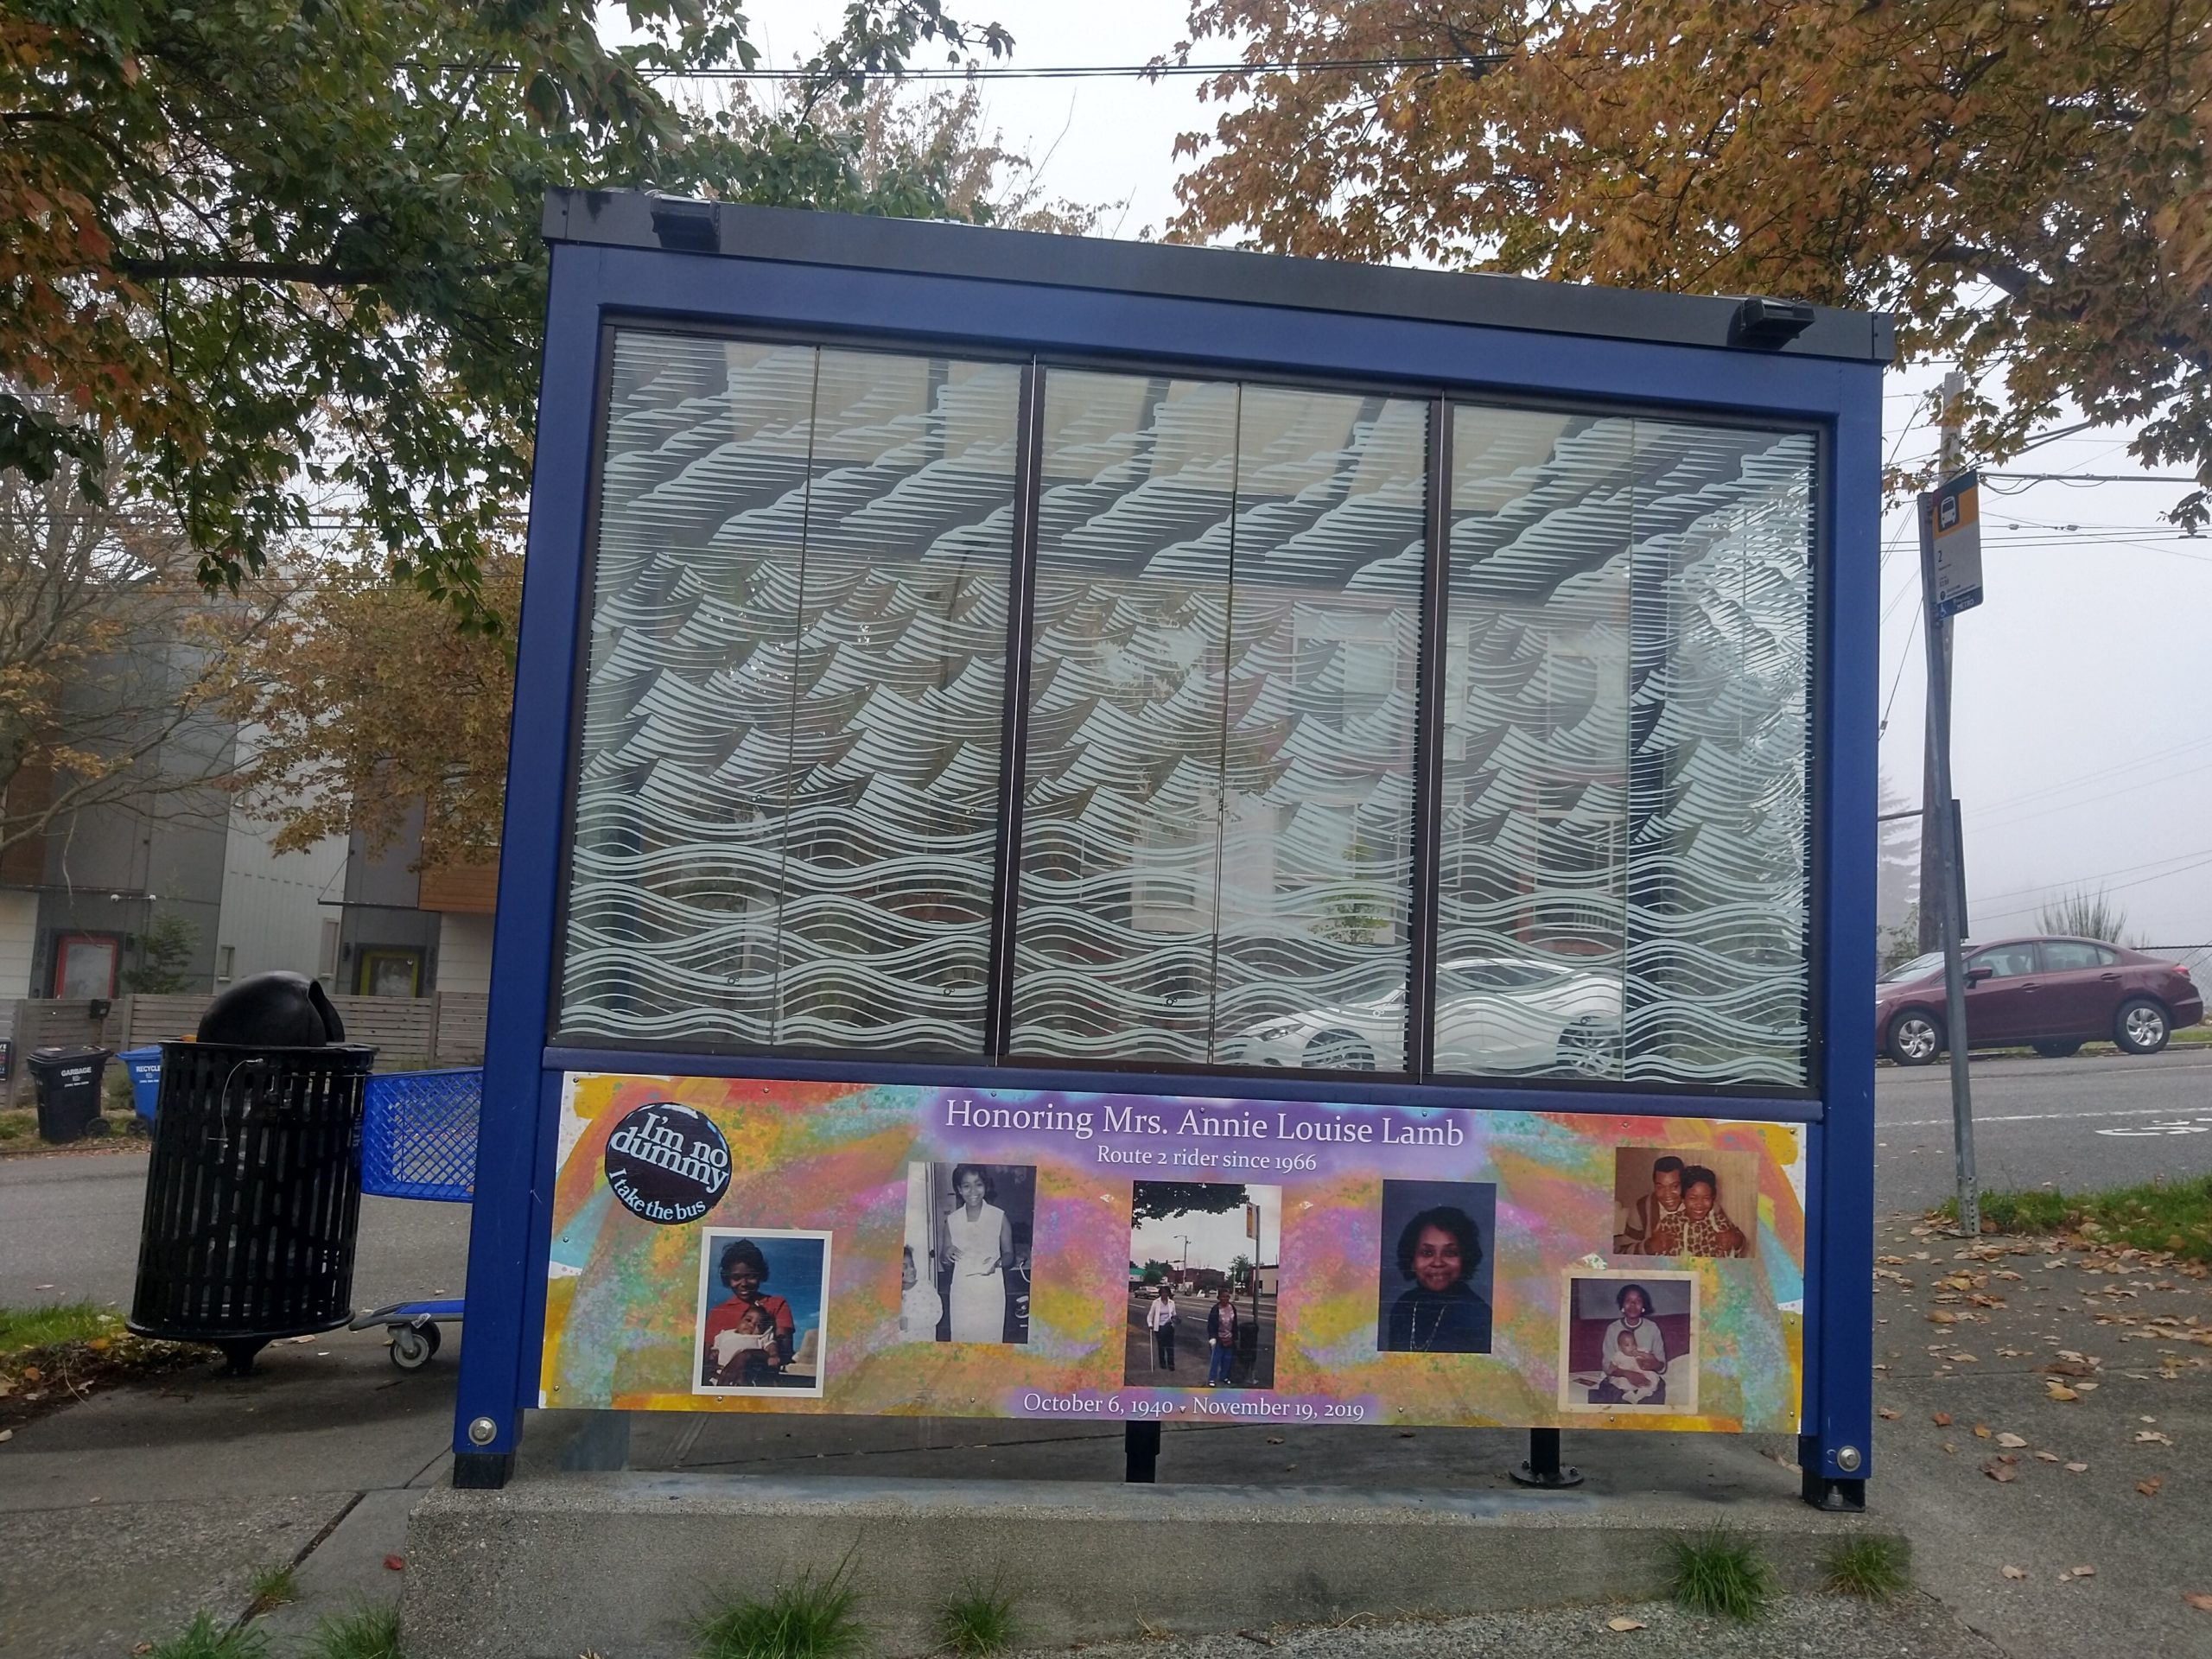 A bus shelter with a mural honoring Annie Lamb